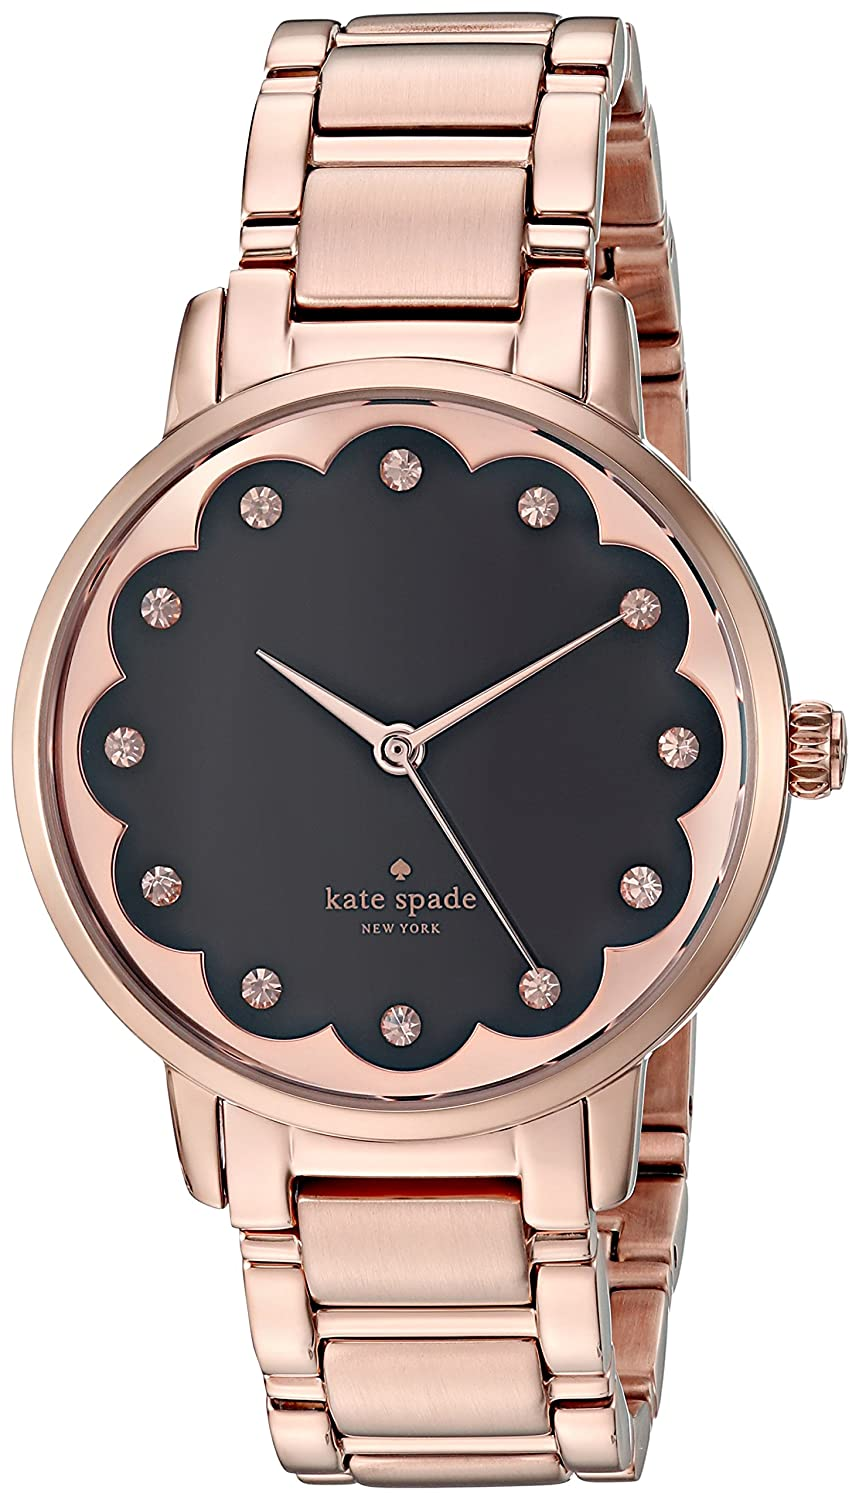 6b5502a29 Amazon.com: kate spade new york Women's Gramercy Analog-Quartz Watch with  Stainless-Steel Strap, Rose Gold, 16 (Model: KSW1044): Kate Spade: Watches